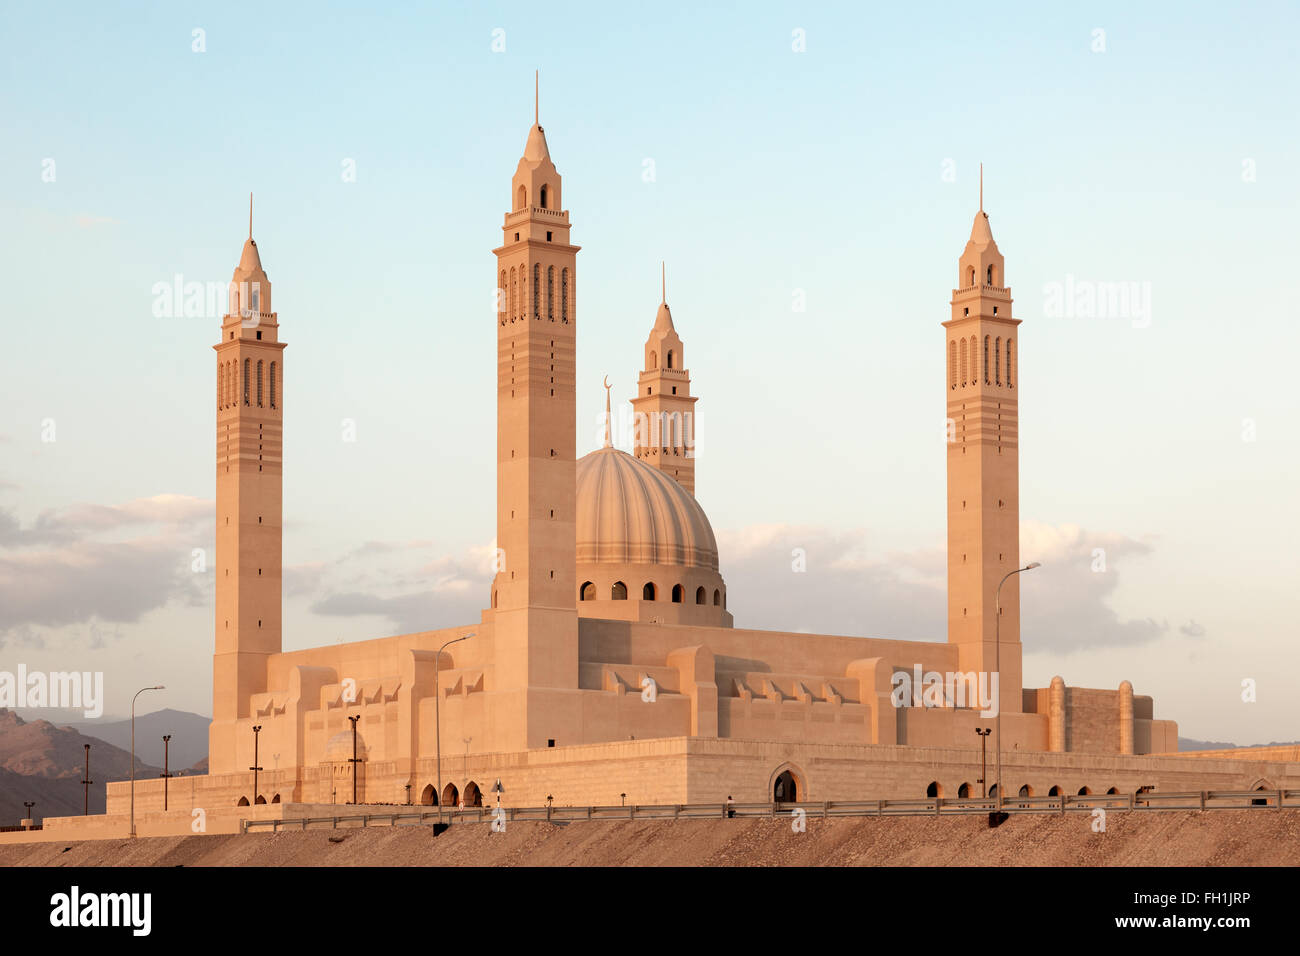 Grand mosque in Nizwa at dusk. Sultanate of Oman, Middle East - Stock Image